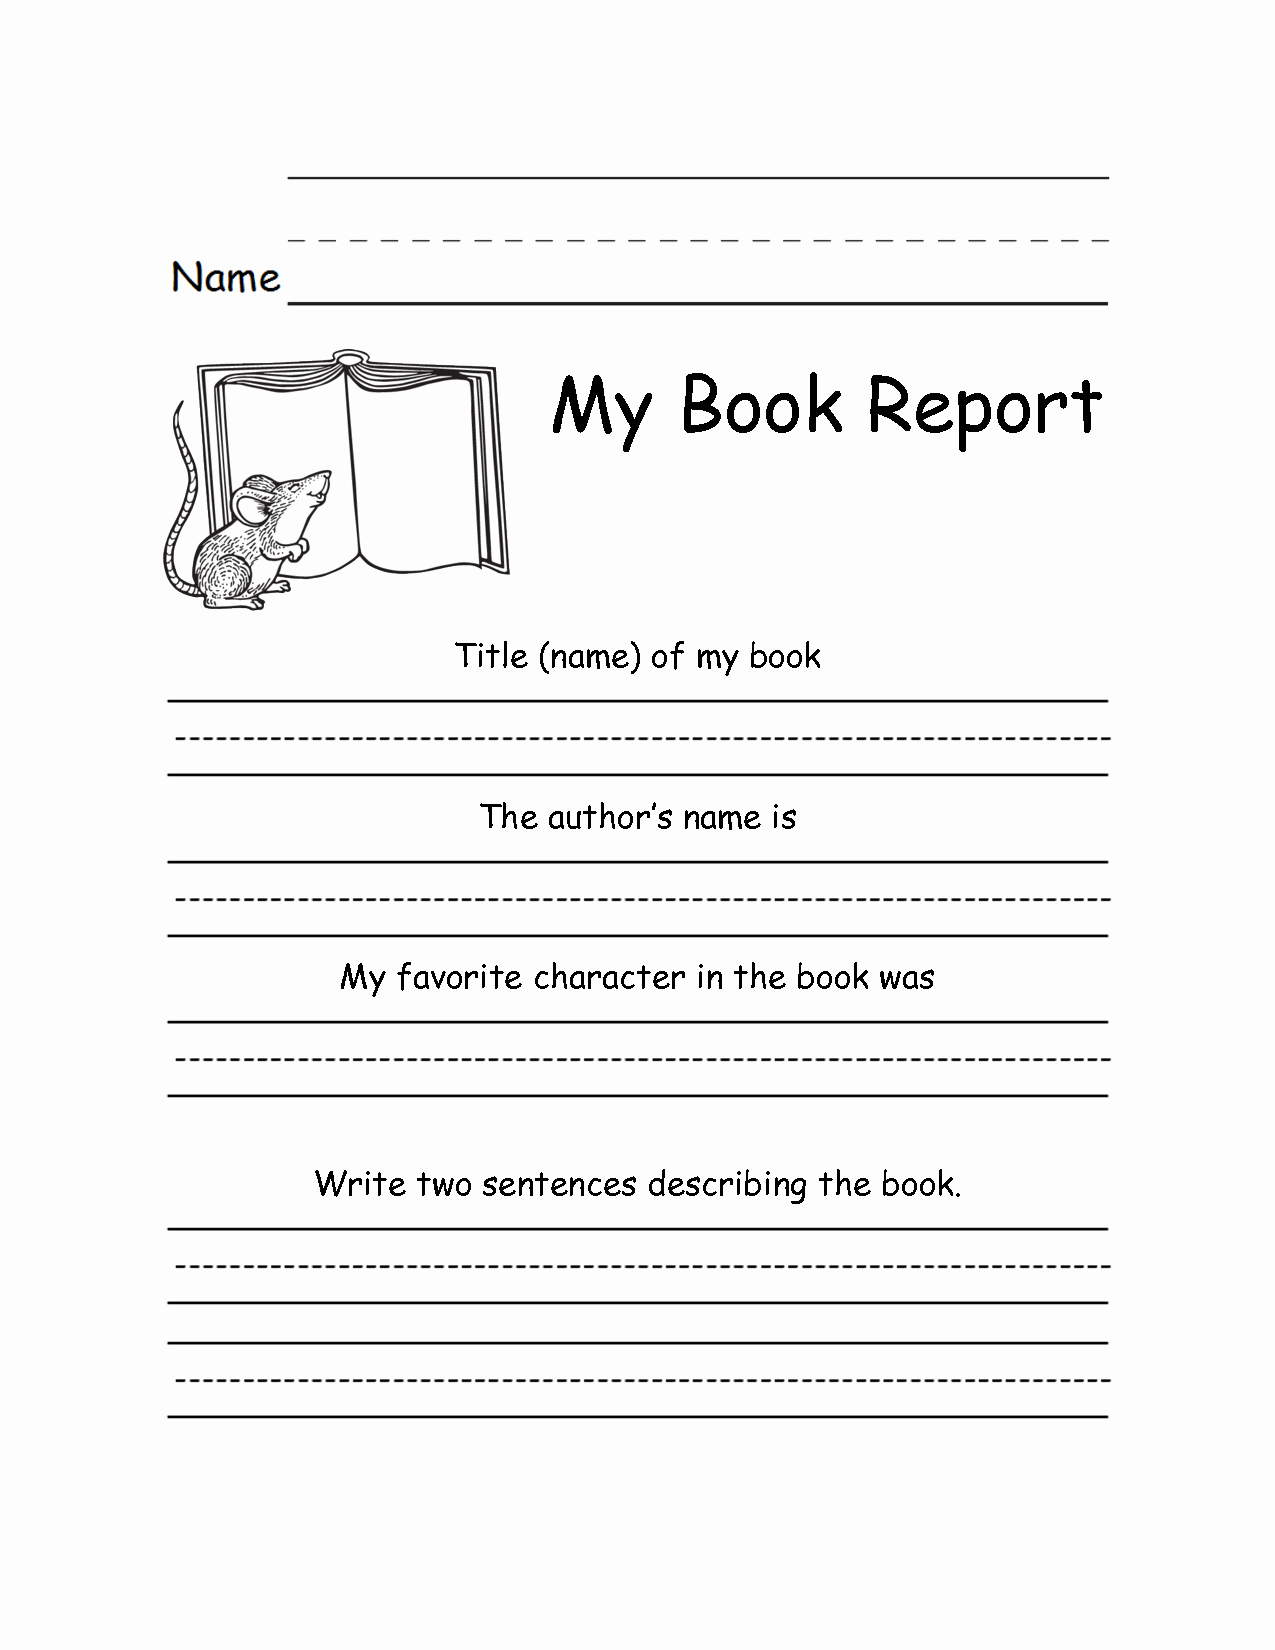 6th Grade Book Report Template Luxury 16 Best Of 5th Grade Book Report Worksheet 5th Grade Book Report Outline Template 3rd